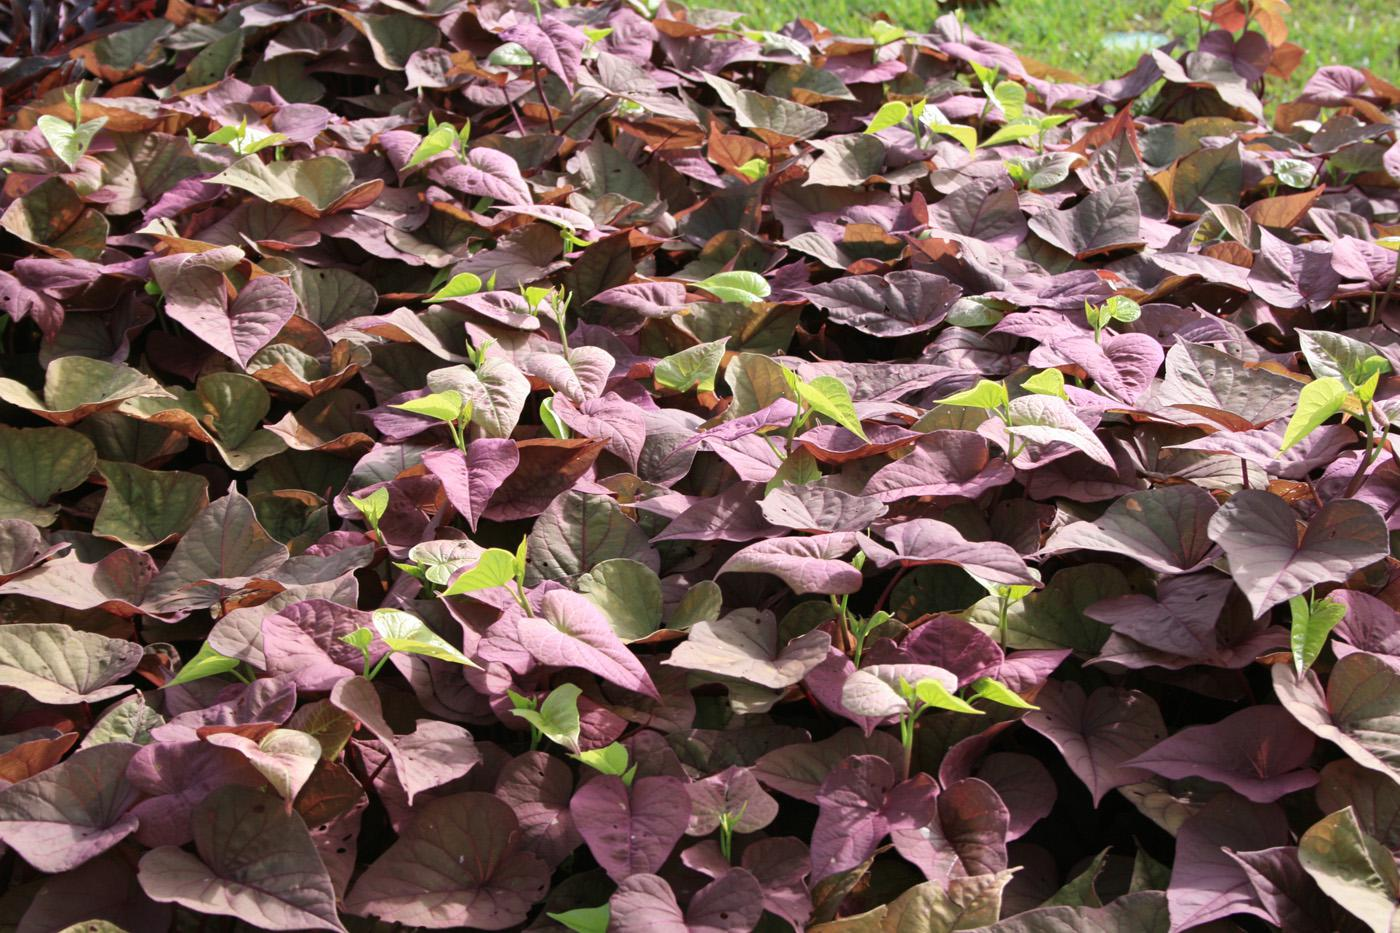 The Sweet Caroline ornamental sweet potato has two leaf shapes, cut-leaf and heart-shaped. Colors include bronze, green-yellow, light green, purple, red and black. (Photo by MSU Extension Service/Gary Bachman)